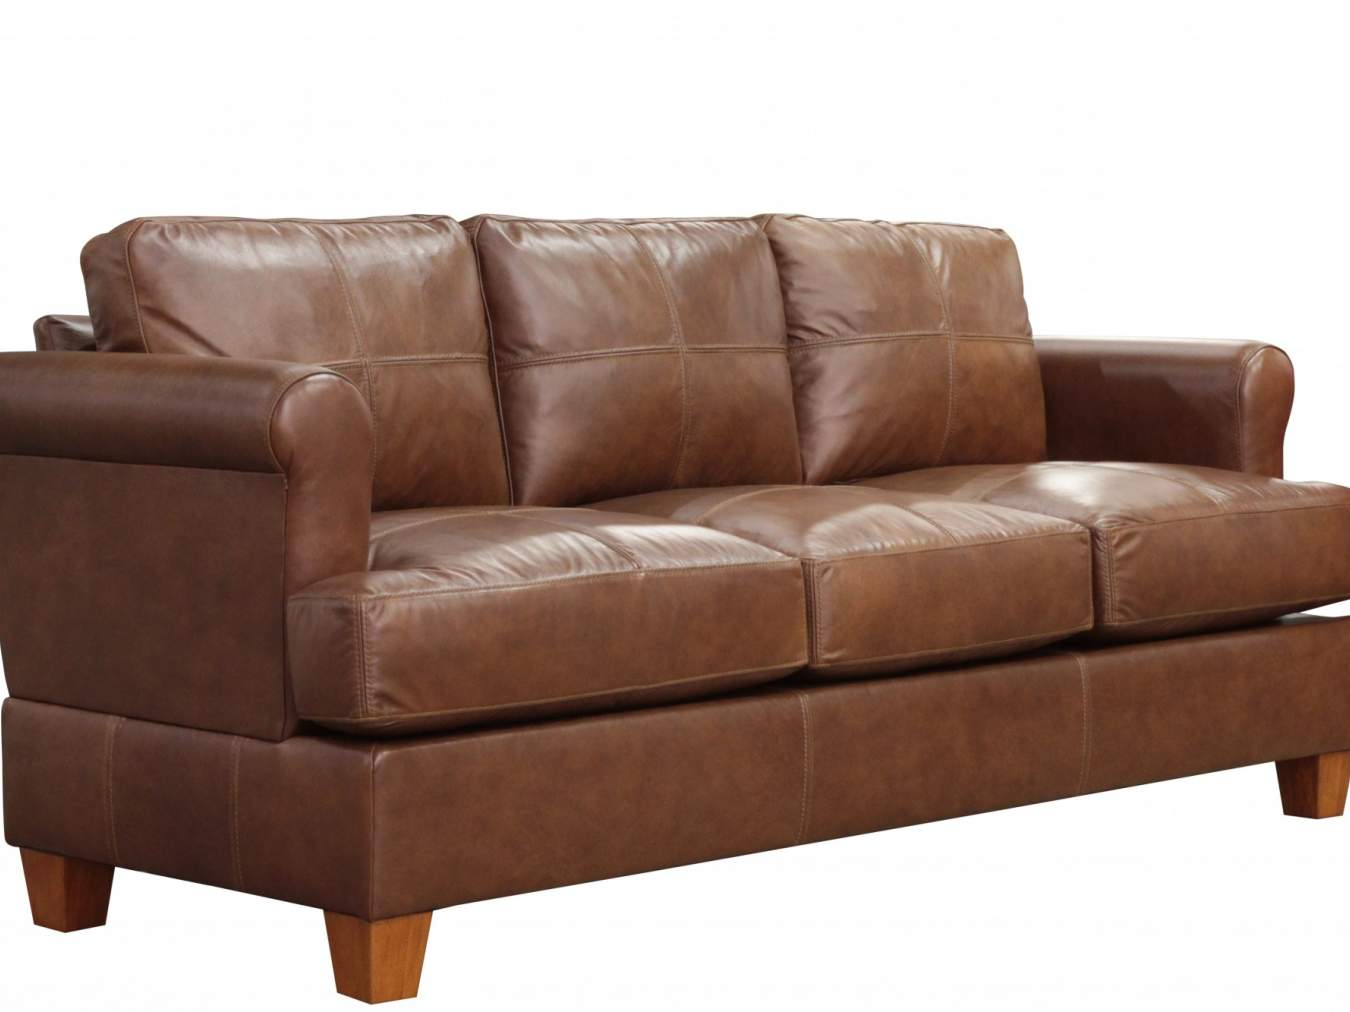 Leather-sofa-angle-view